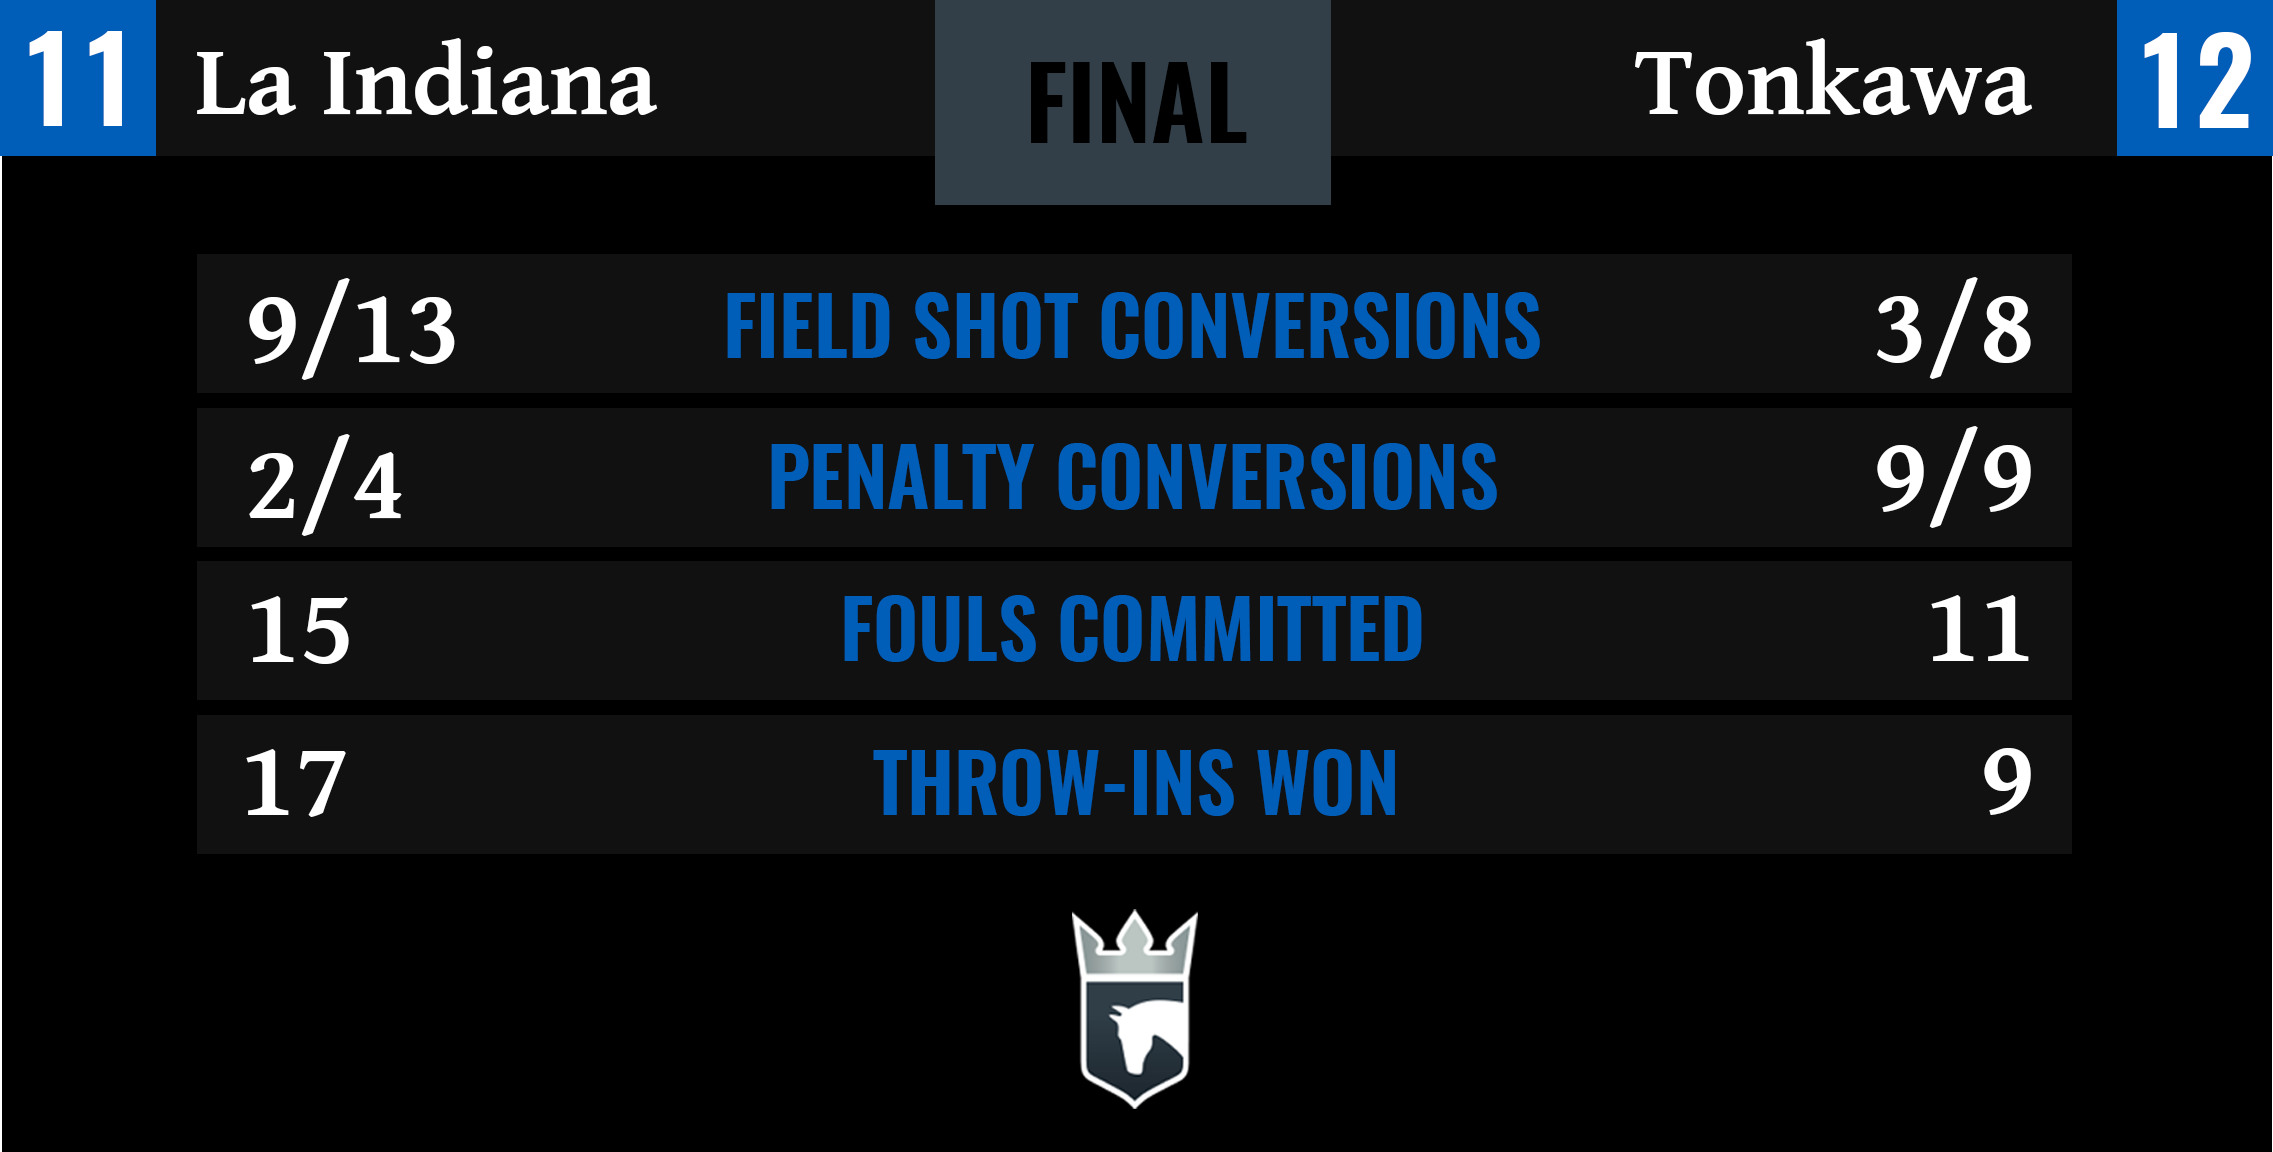 La Indiana vs Tonkawa Final Stats